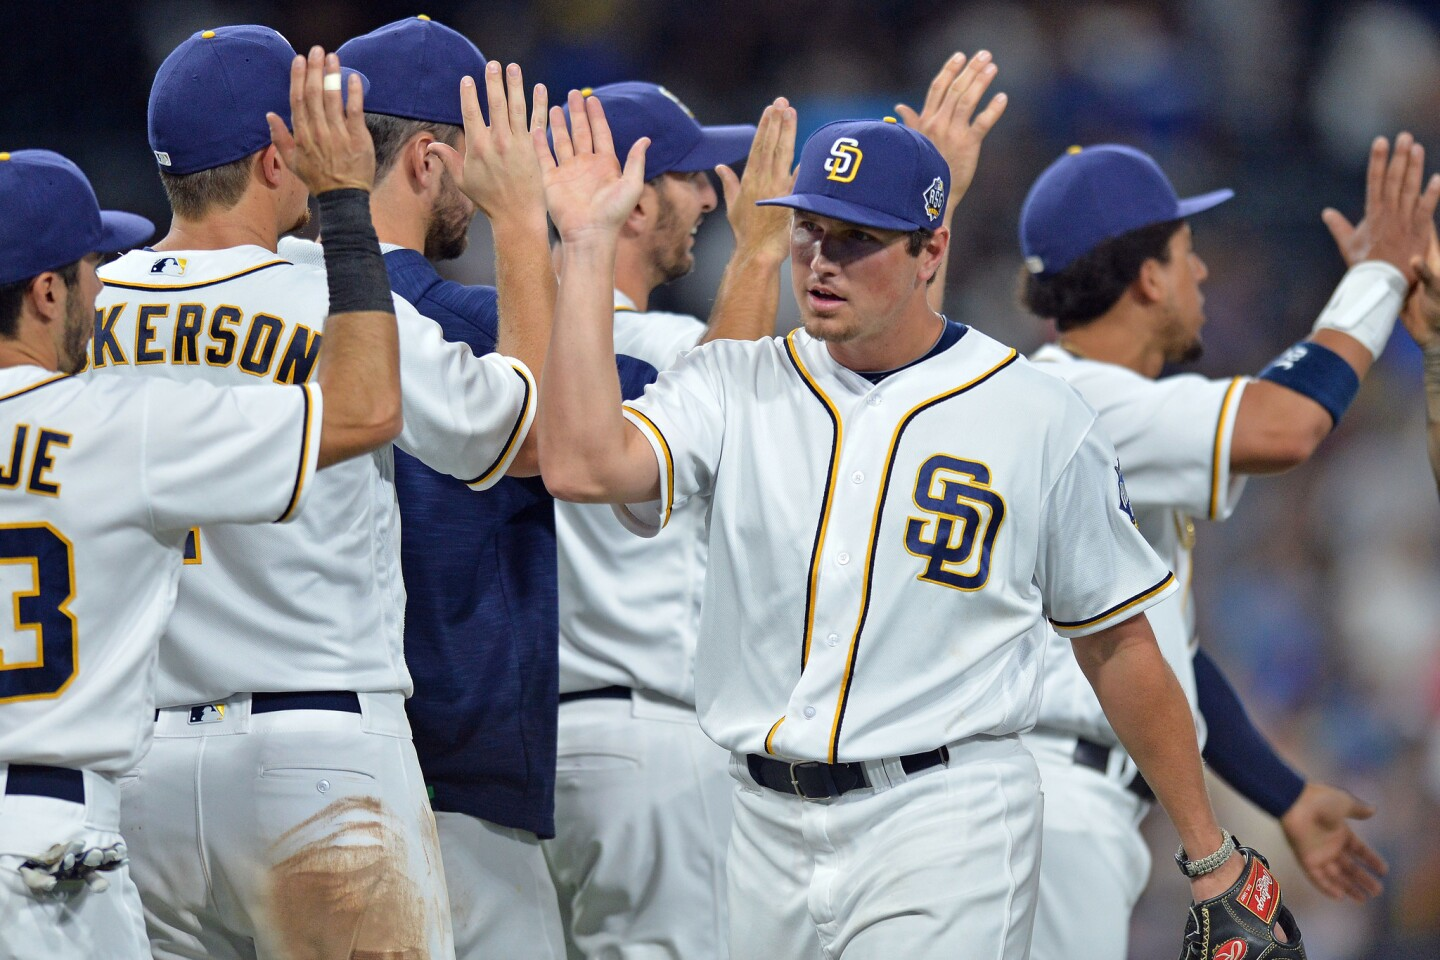 Sep 28, 2016; San Diego, CA, USA; San Diego Padres right fielder Hunter Renfroe (center) celebrates a 6-5 win over the Los Angeles Dodgers with teammmates at Petco Park. Mandatory Credit: Jake Roth-USA TODAY Sports ** Usable by SD ONLY **